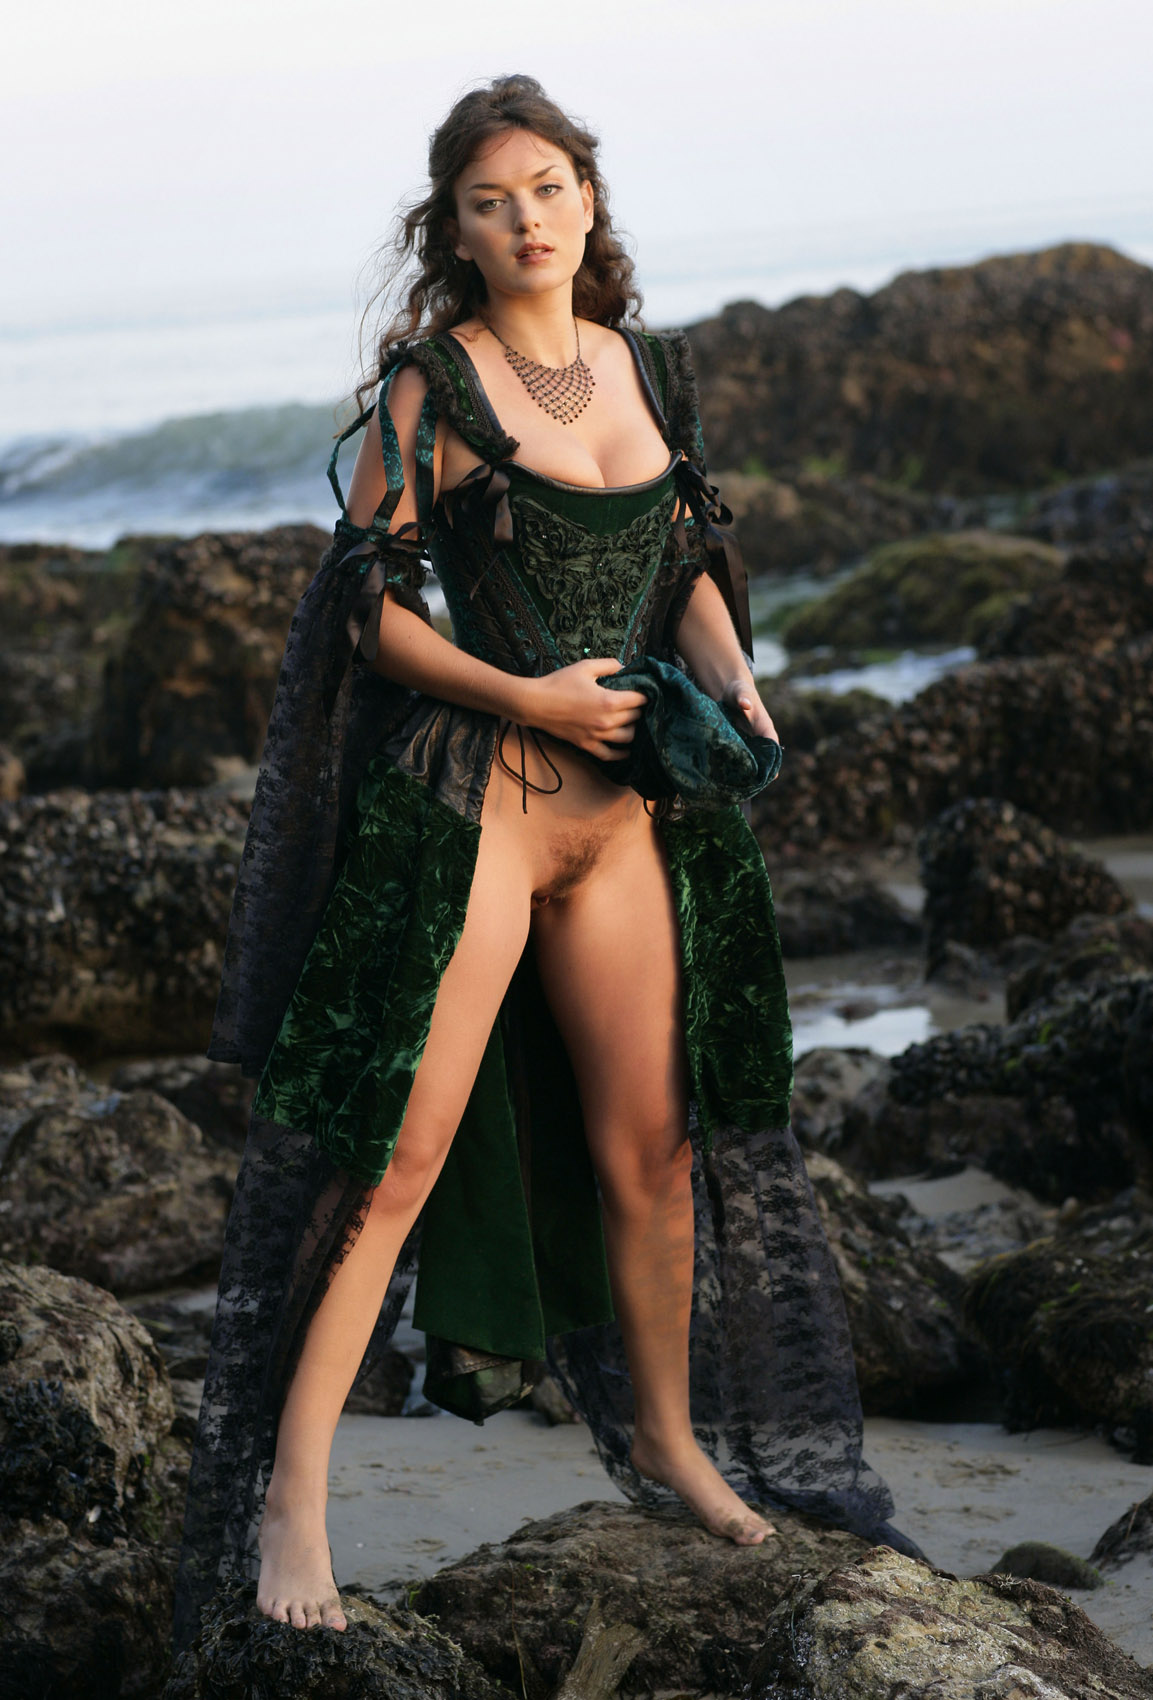 Betcee Beach Beauty for Bare Maidens | Curvy Erotic